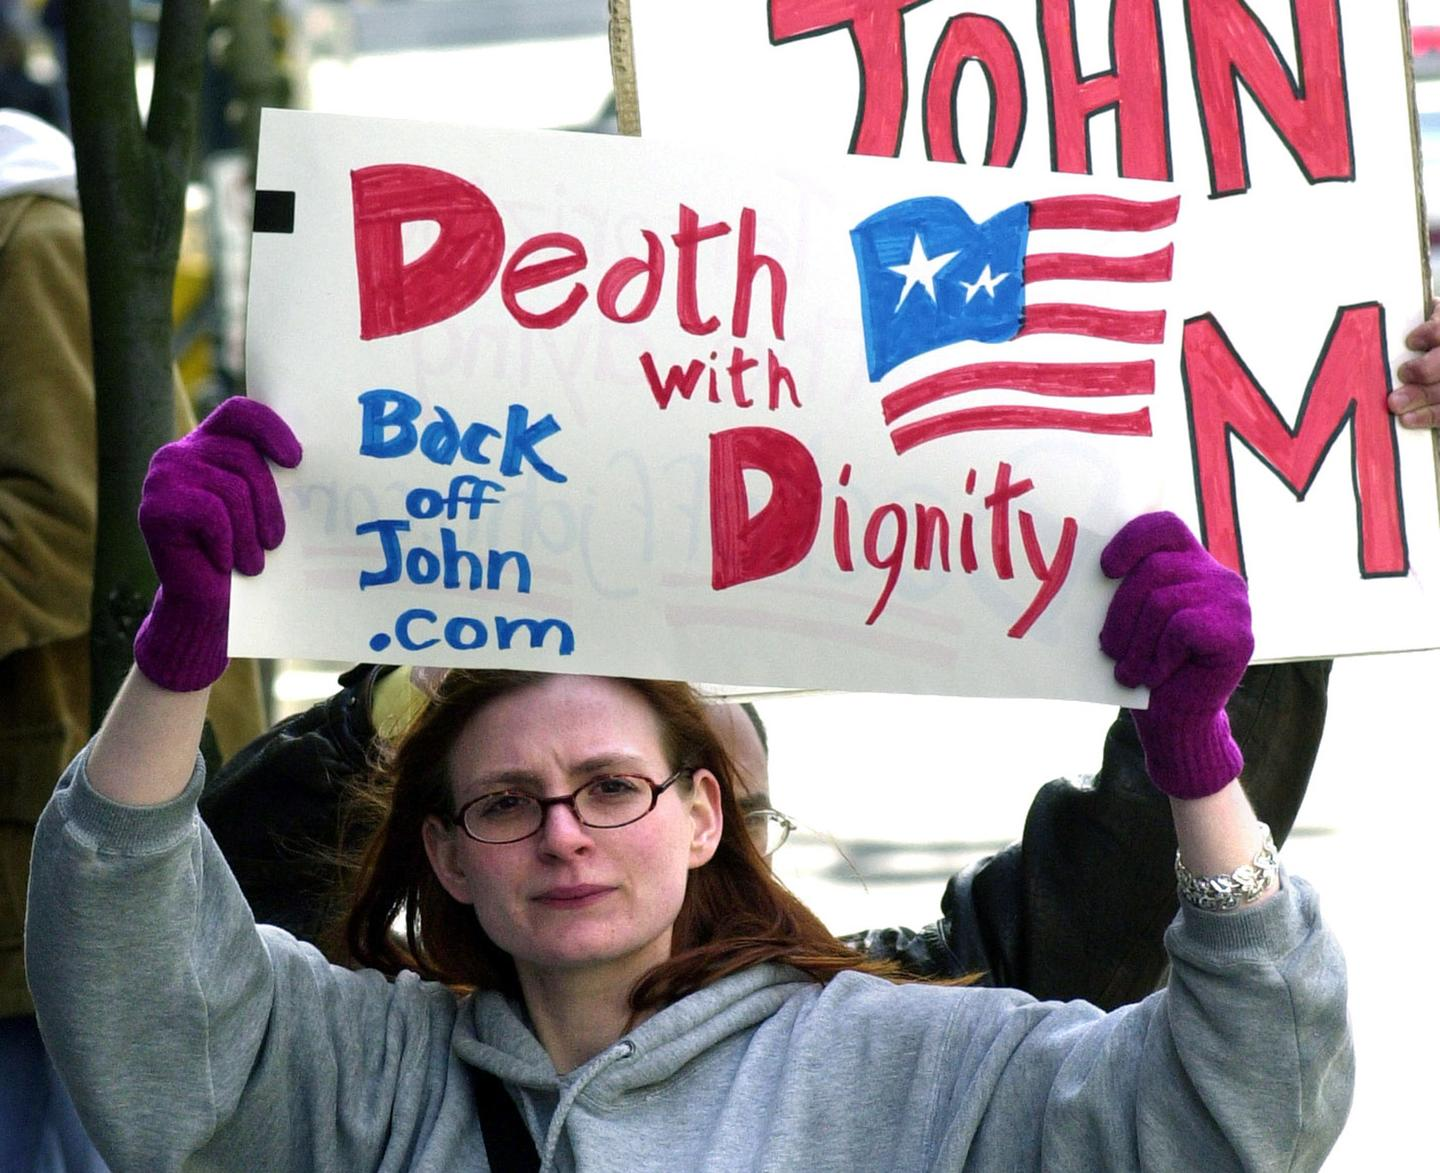 Death with Dignity supporter